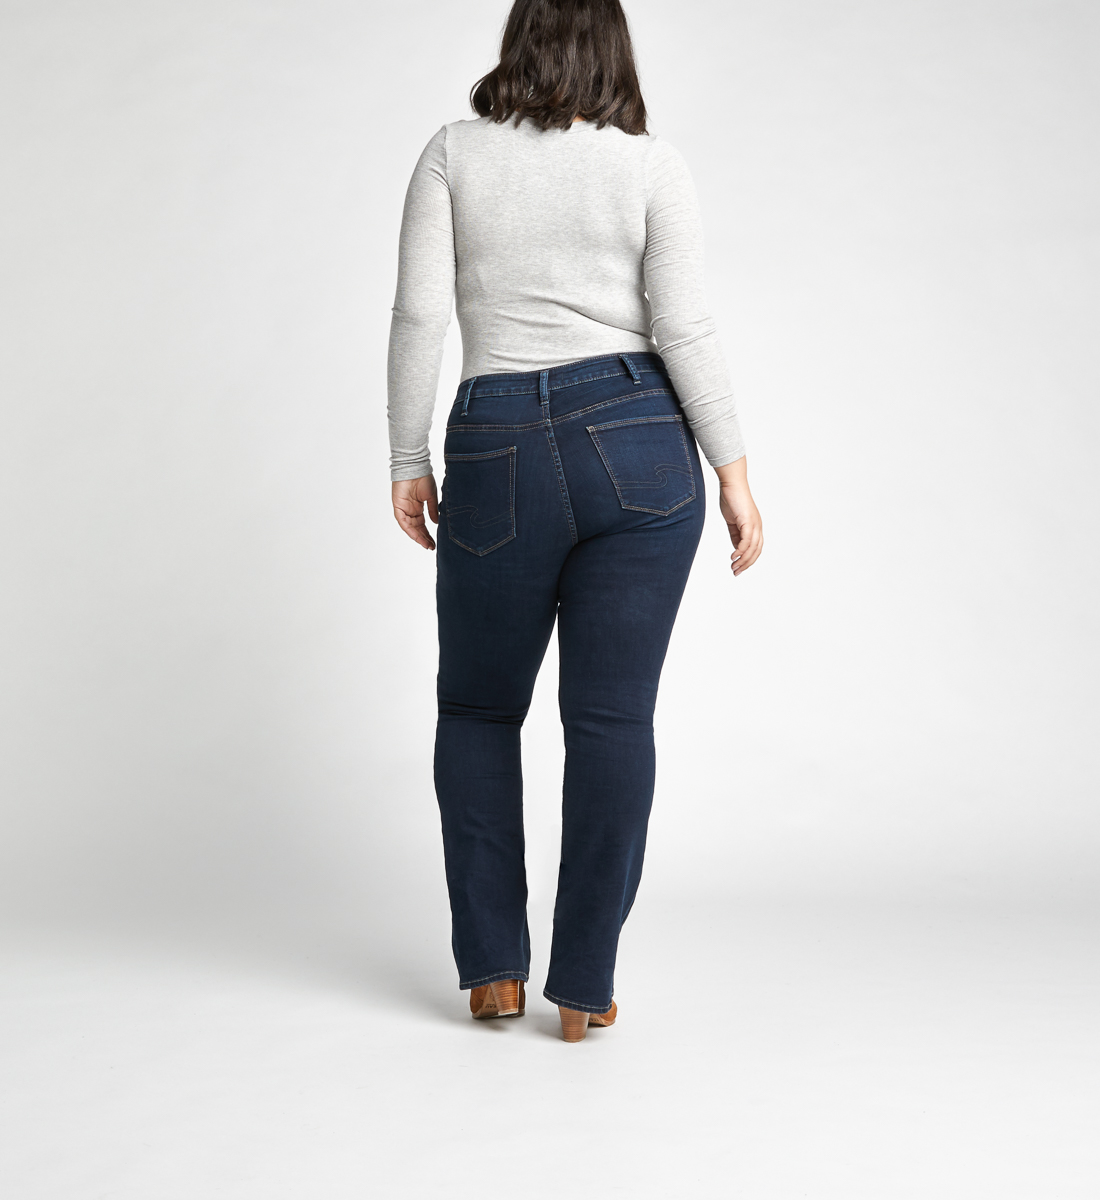 Avery High Rise Slim Bootcut Jeans Plus Size,Indigo Back